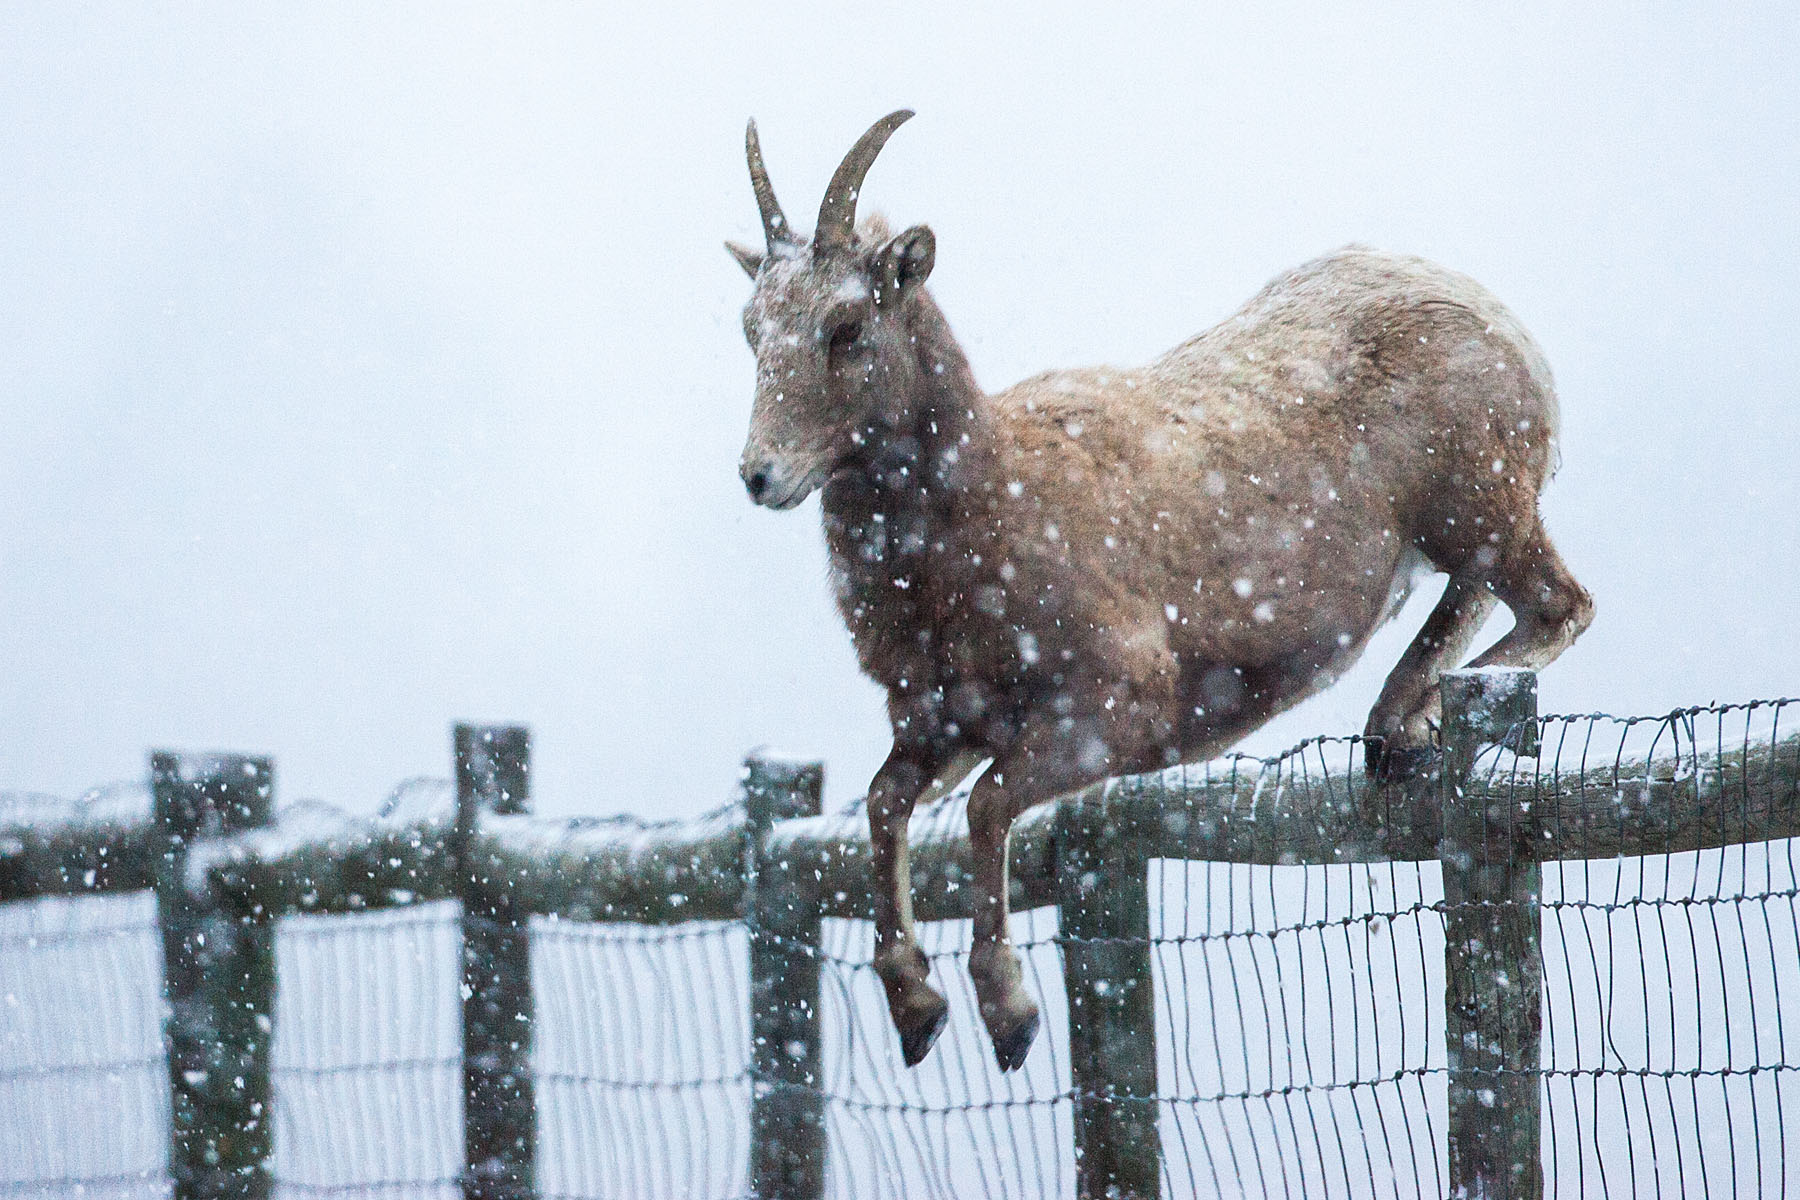 Rocky Mountain Bighorn ewe leaps 4-foot fence, Custer State Park, December 2009.  Click for next photo.